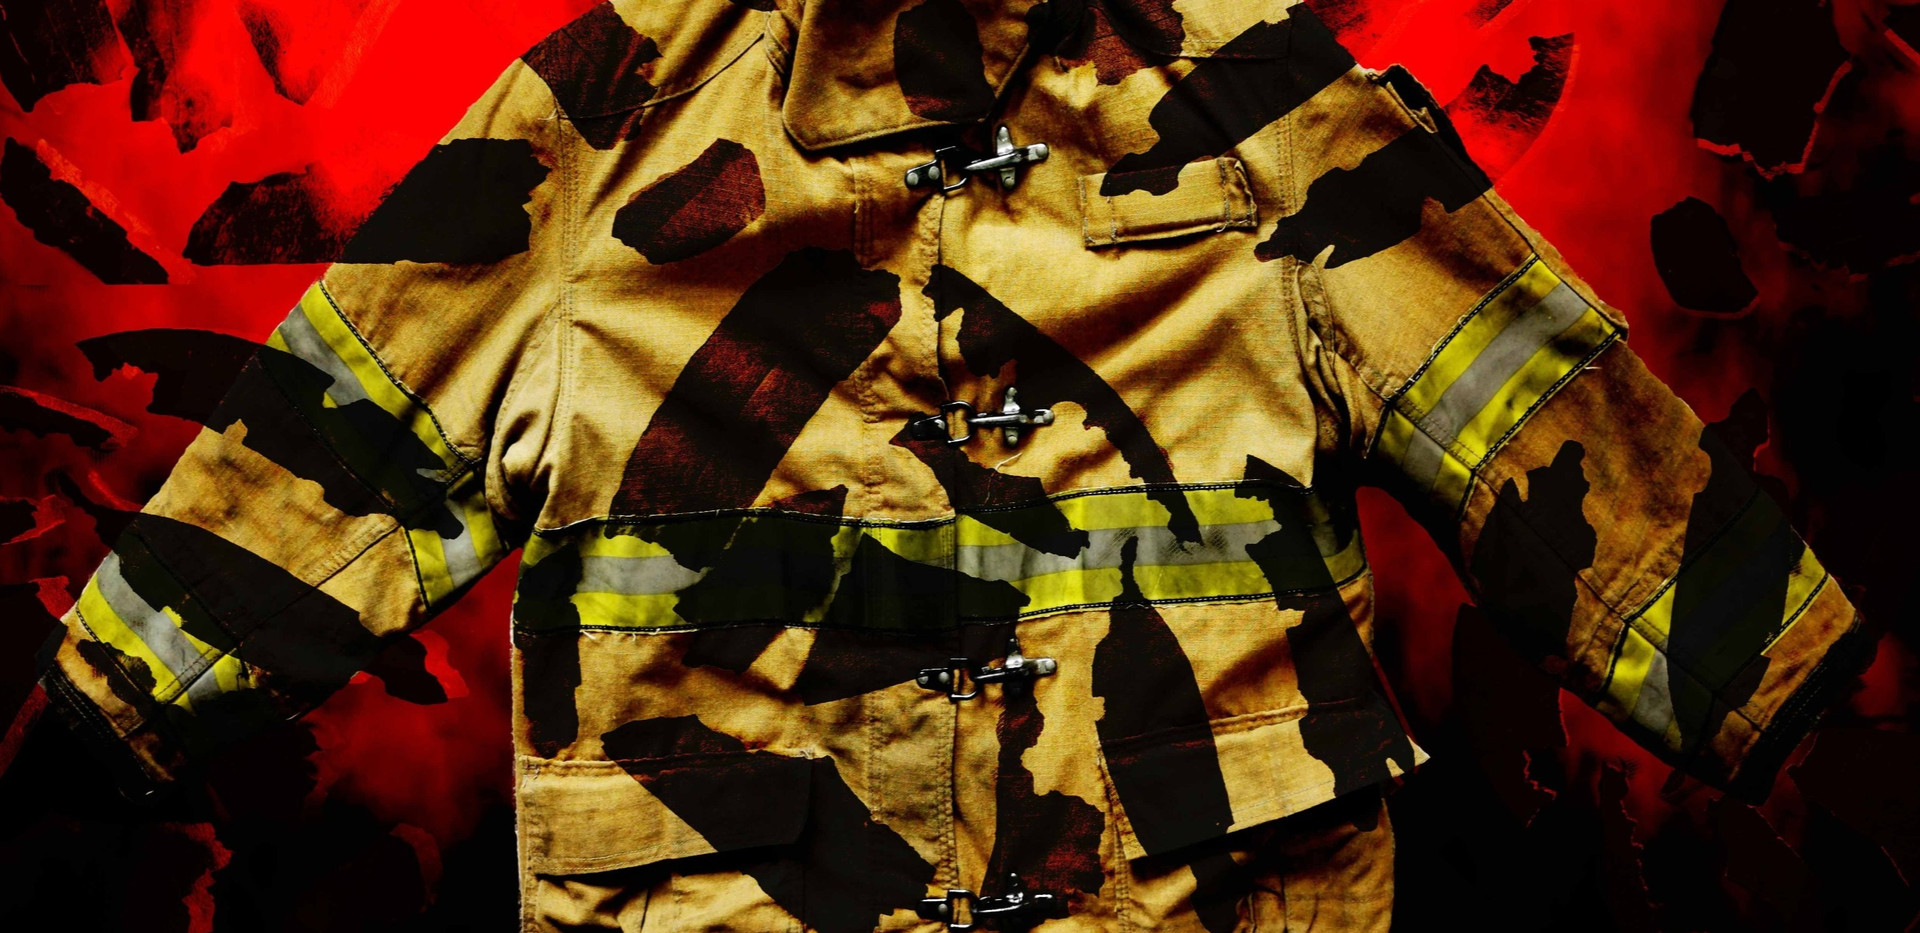 The Firefighter #1